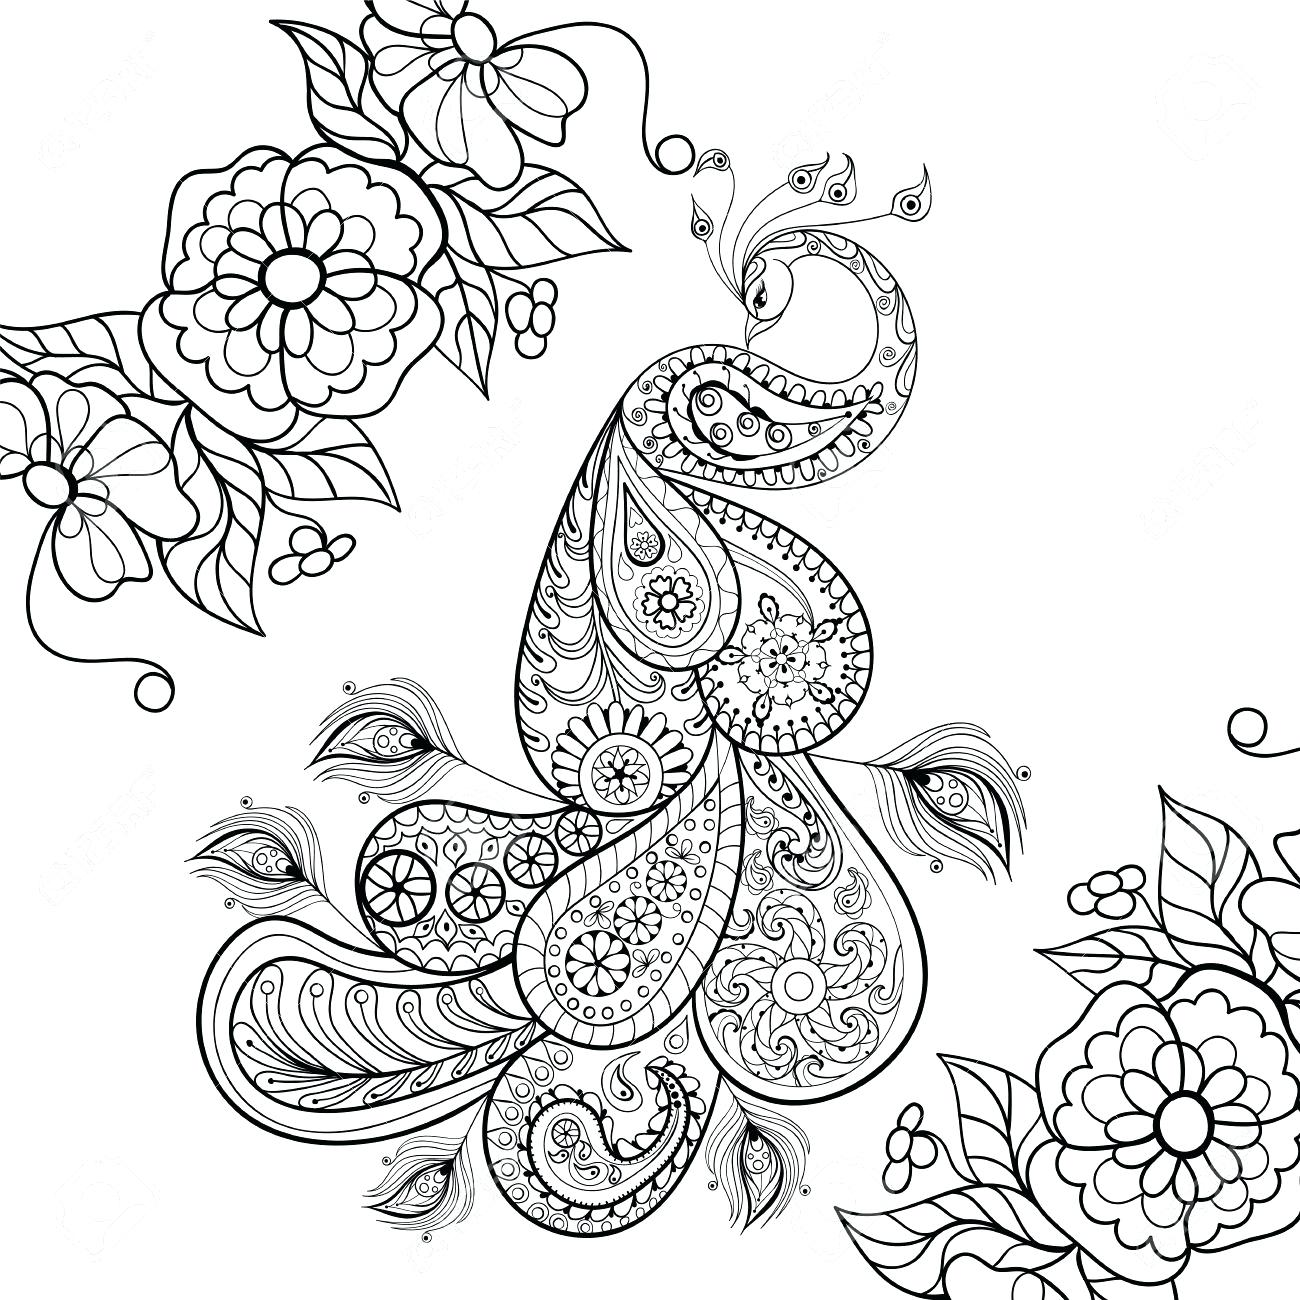 1300x1300 Printable Zentangle Peacock Coloring Pages Printable Page